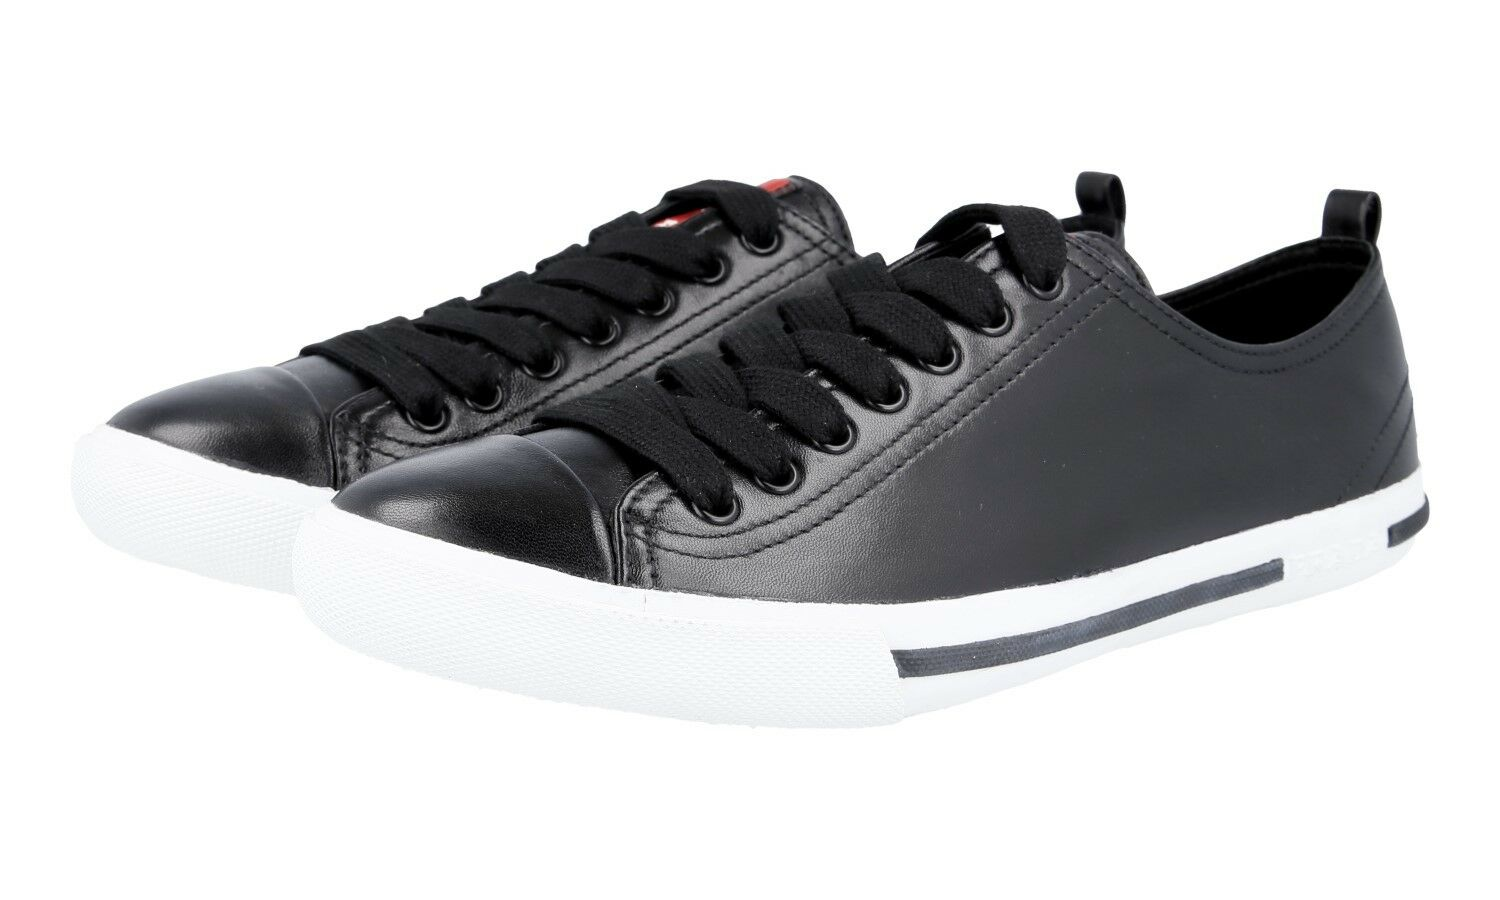 AUTHENTIC LUXURY PRADA SNEAKERS SHOES 4E2927 BLACK NEW US 8.5